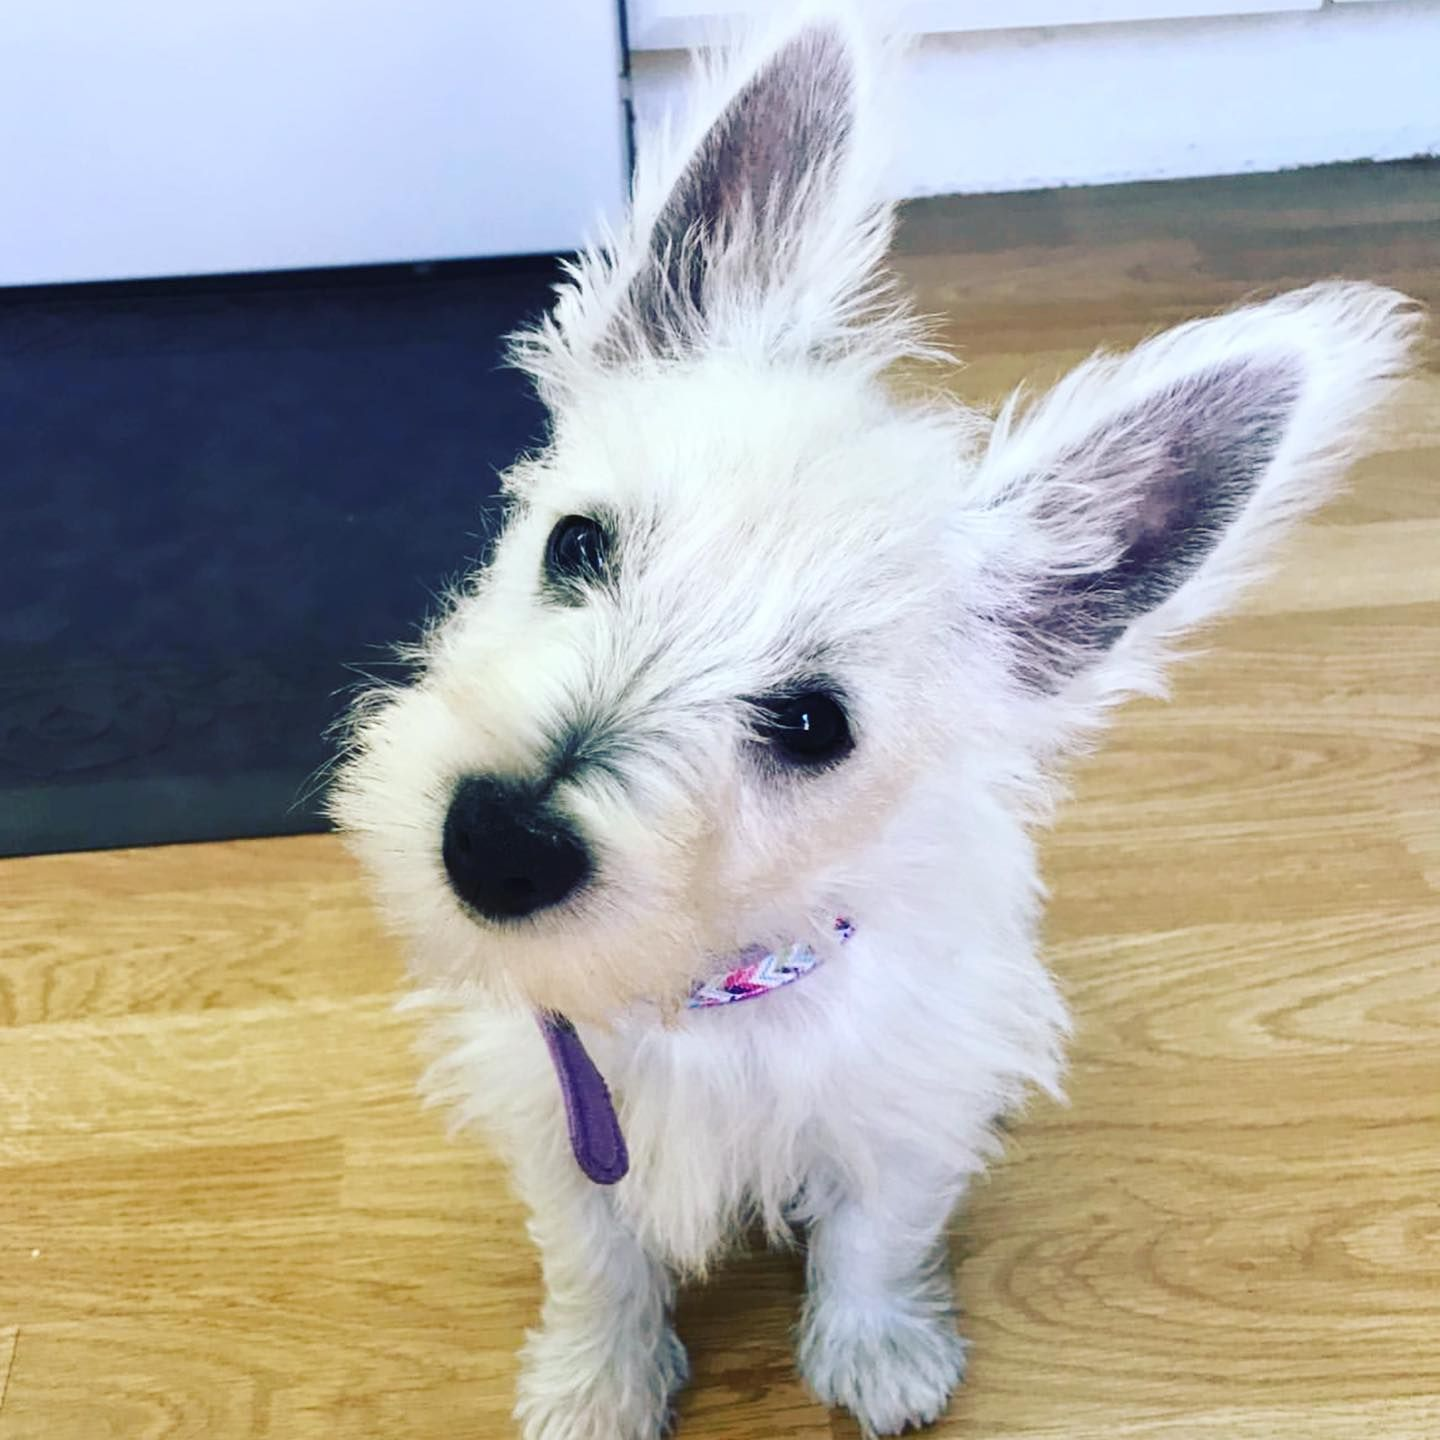 Besties Want Your Forever Love Puppy To Be Featured On Our Page Send Us Pictures Westie Puppylove Puppylife Westiesa In 2020 Puppies Westies Puppy Love